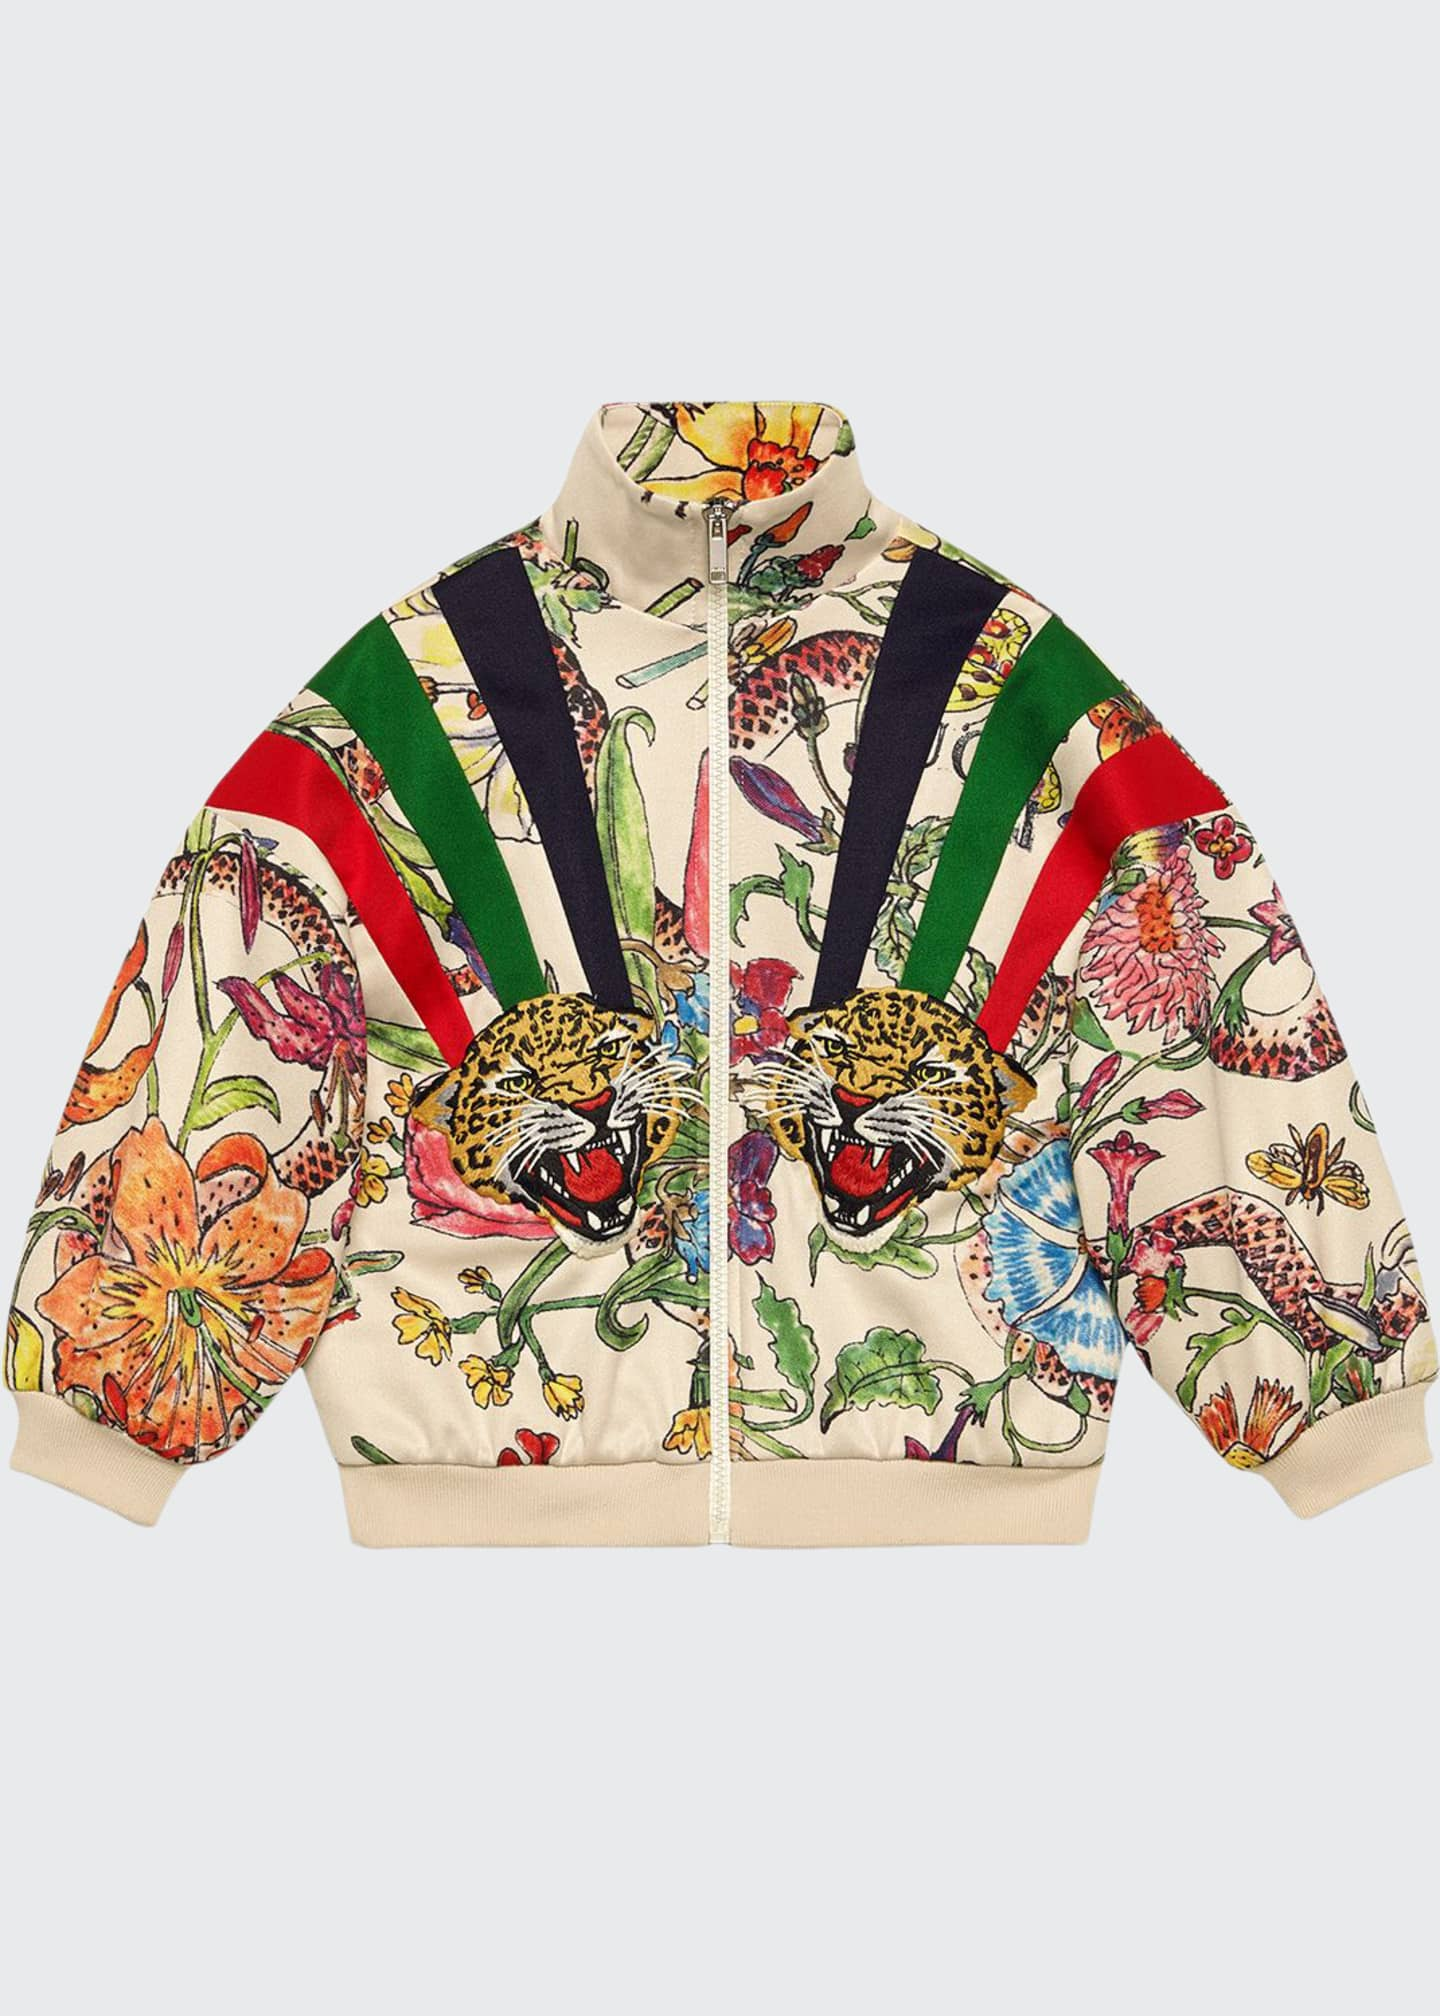 Gucci Floral Zip-Up Sweatshirt w/ Stripes & Tiger